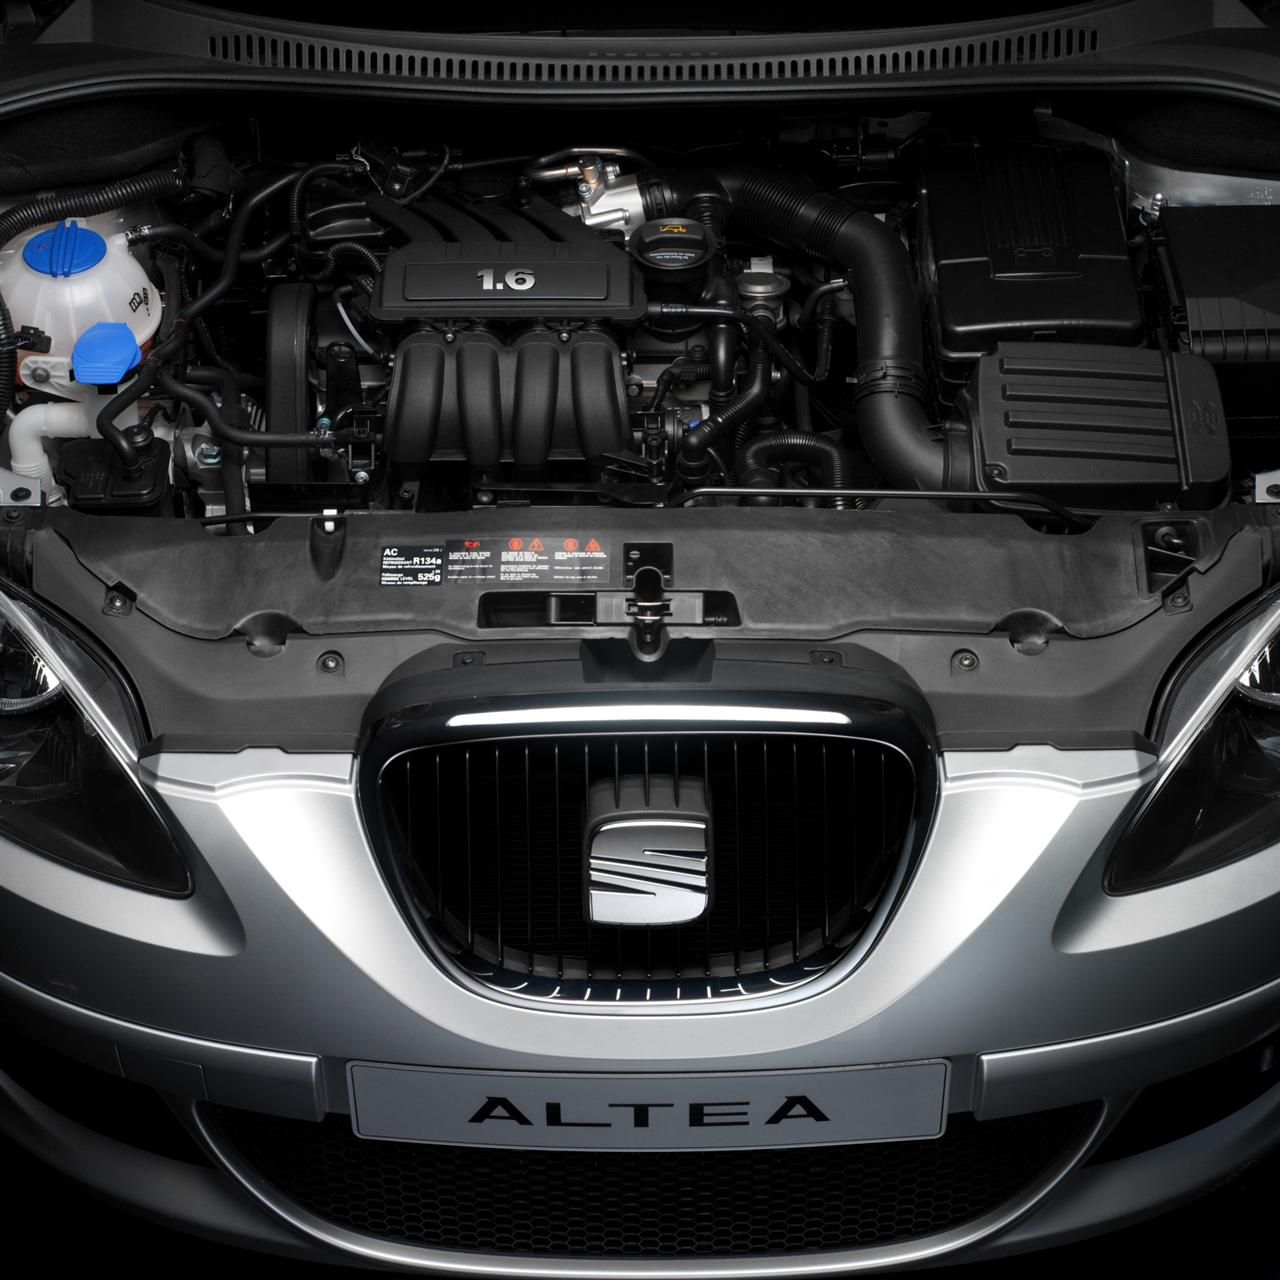 SEAT ALTEA engine